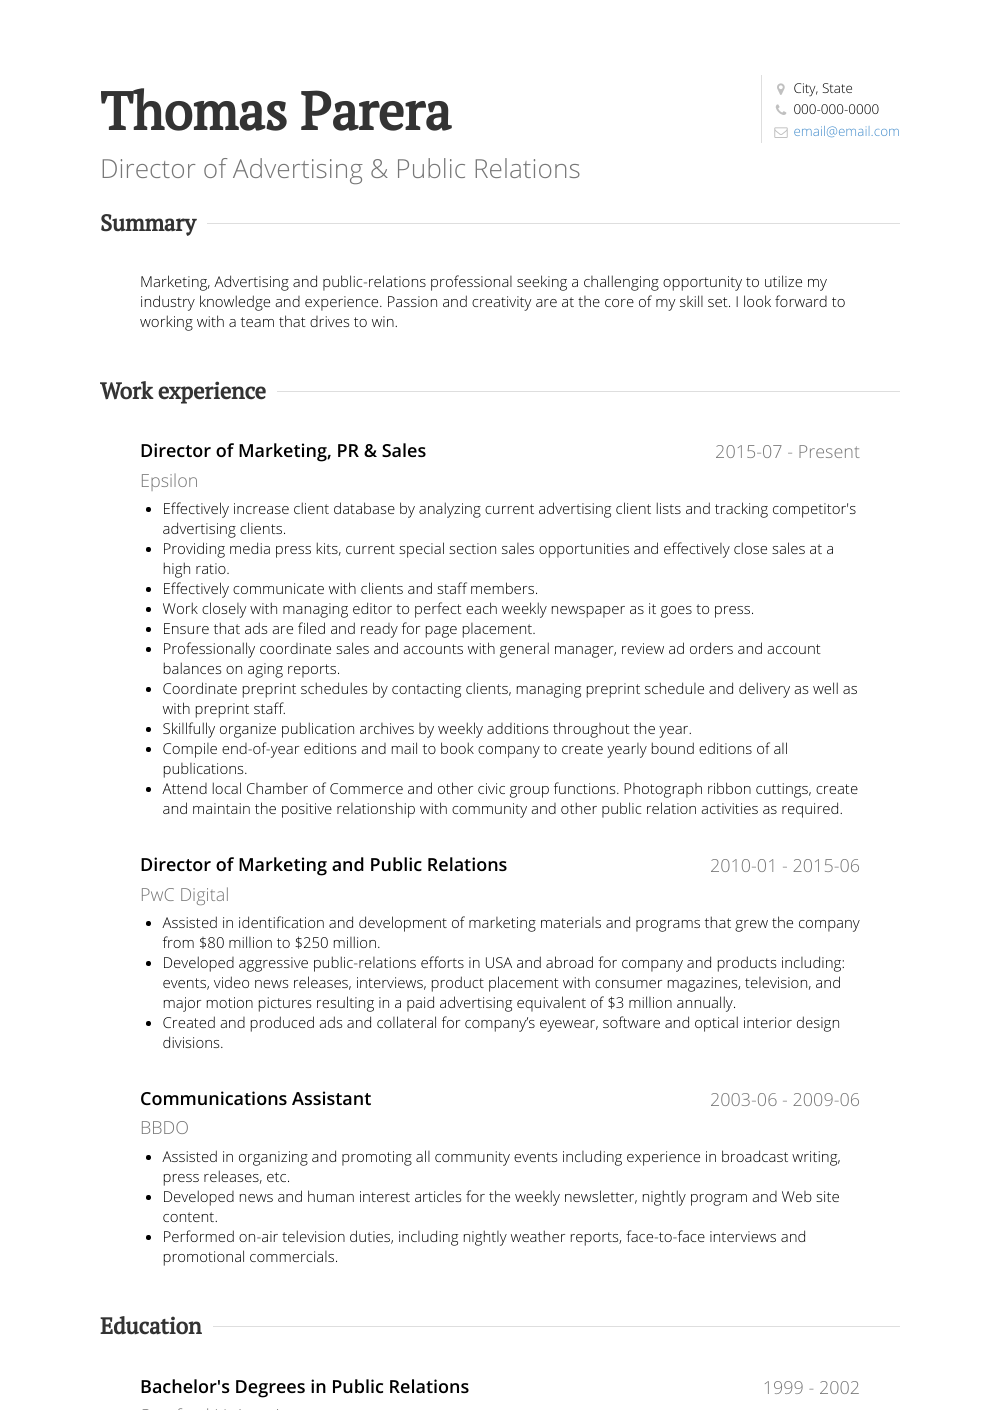 Director of Advertising & Public Relations Resume Sample and Template